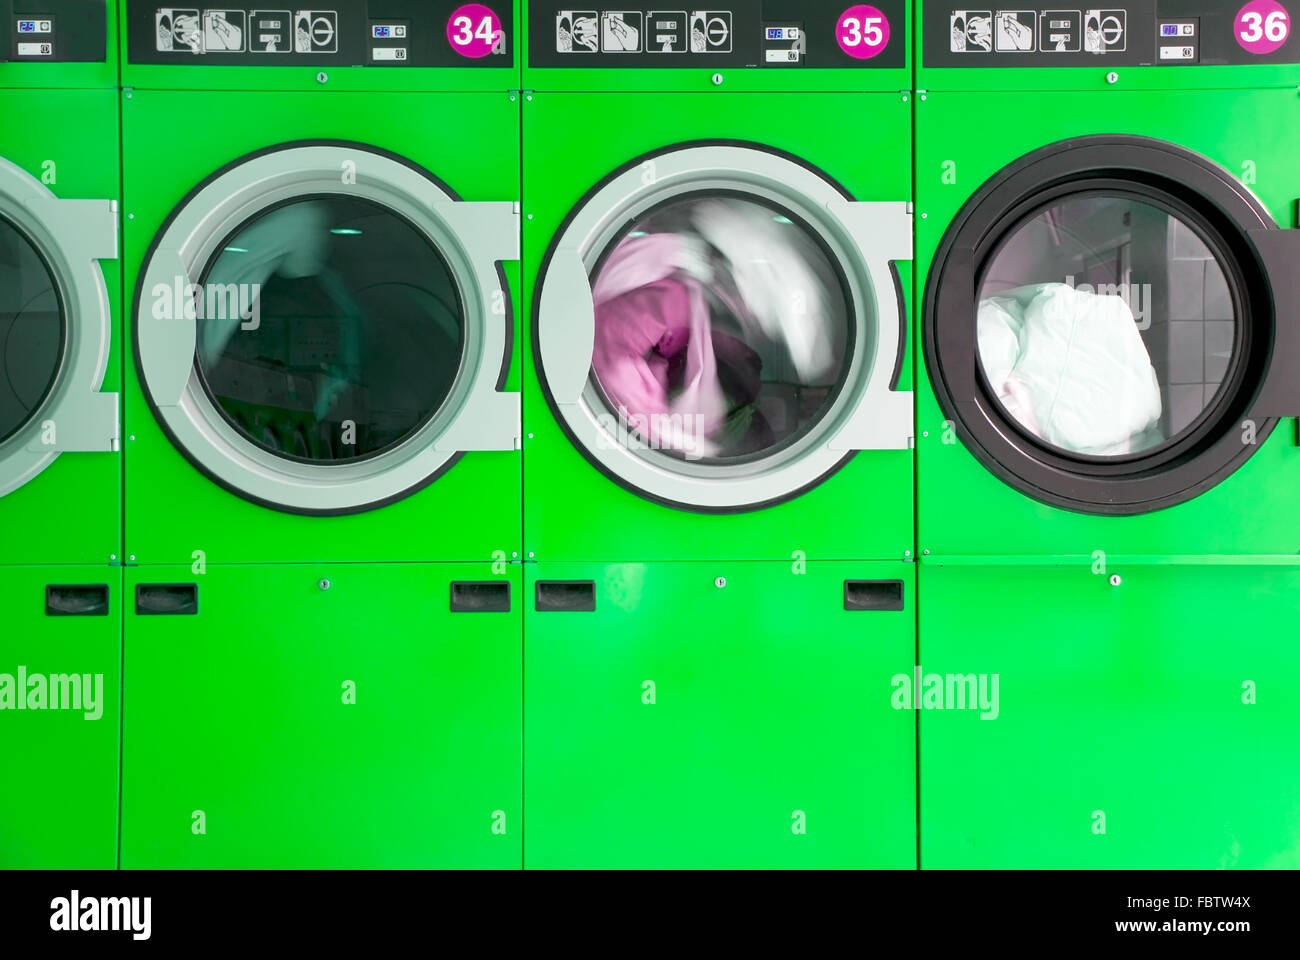 clothes washers - Stock Image